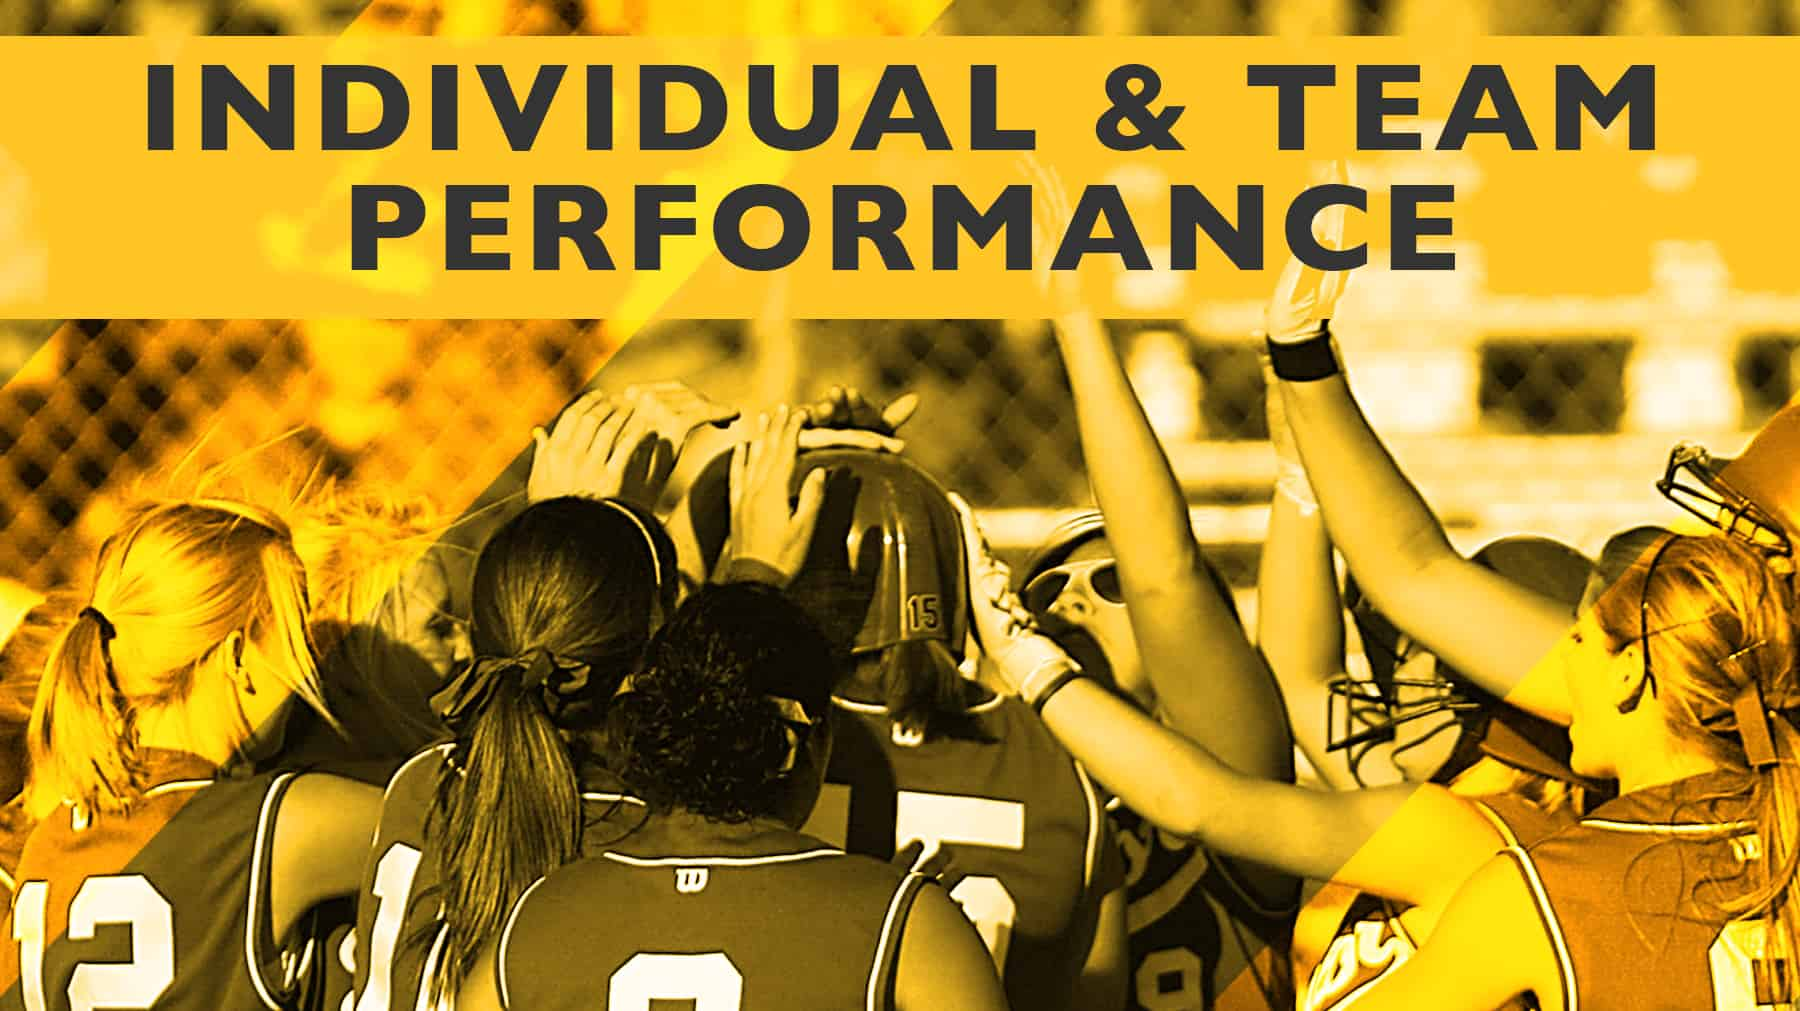 developing individuals and teams Teams drive organizational success, though developing and leading high-performance teams is one of the most complex tasks facing any leader in the current competitive work environment cohesiveness is the key factor in implementing effective, high-performance teams.